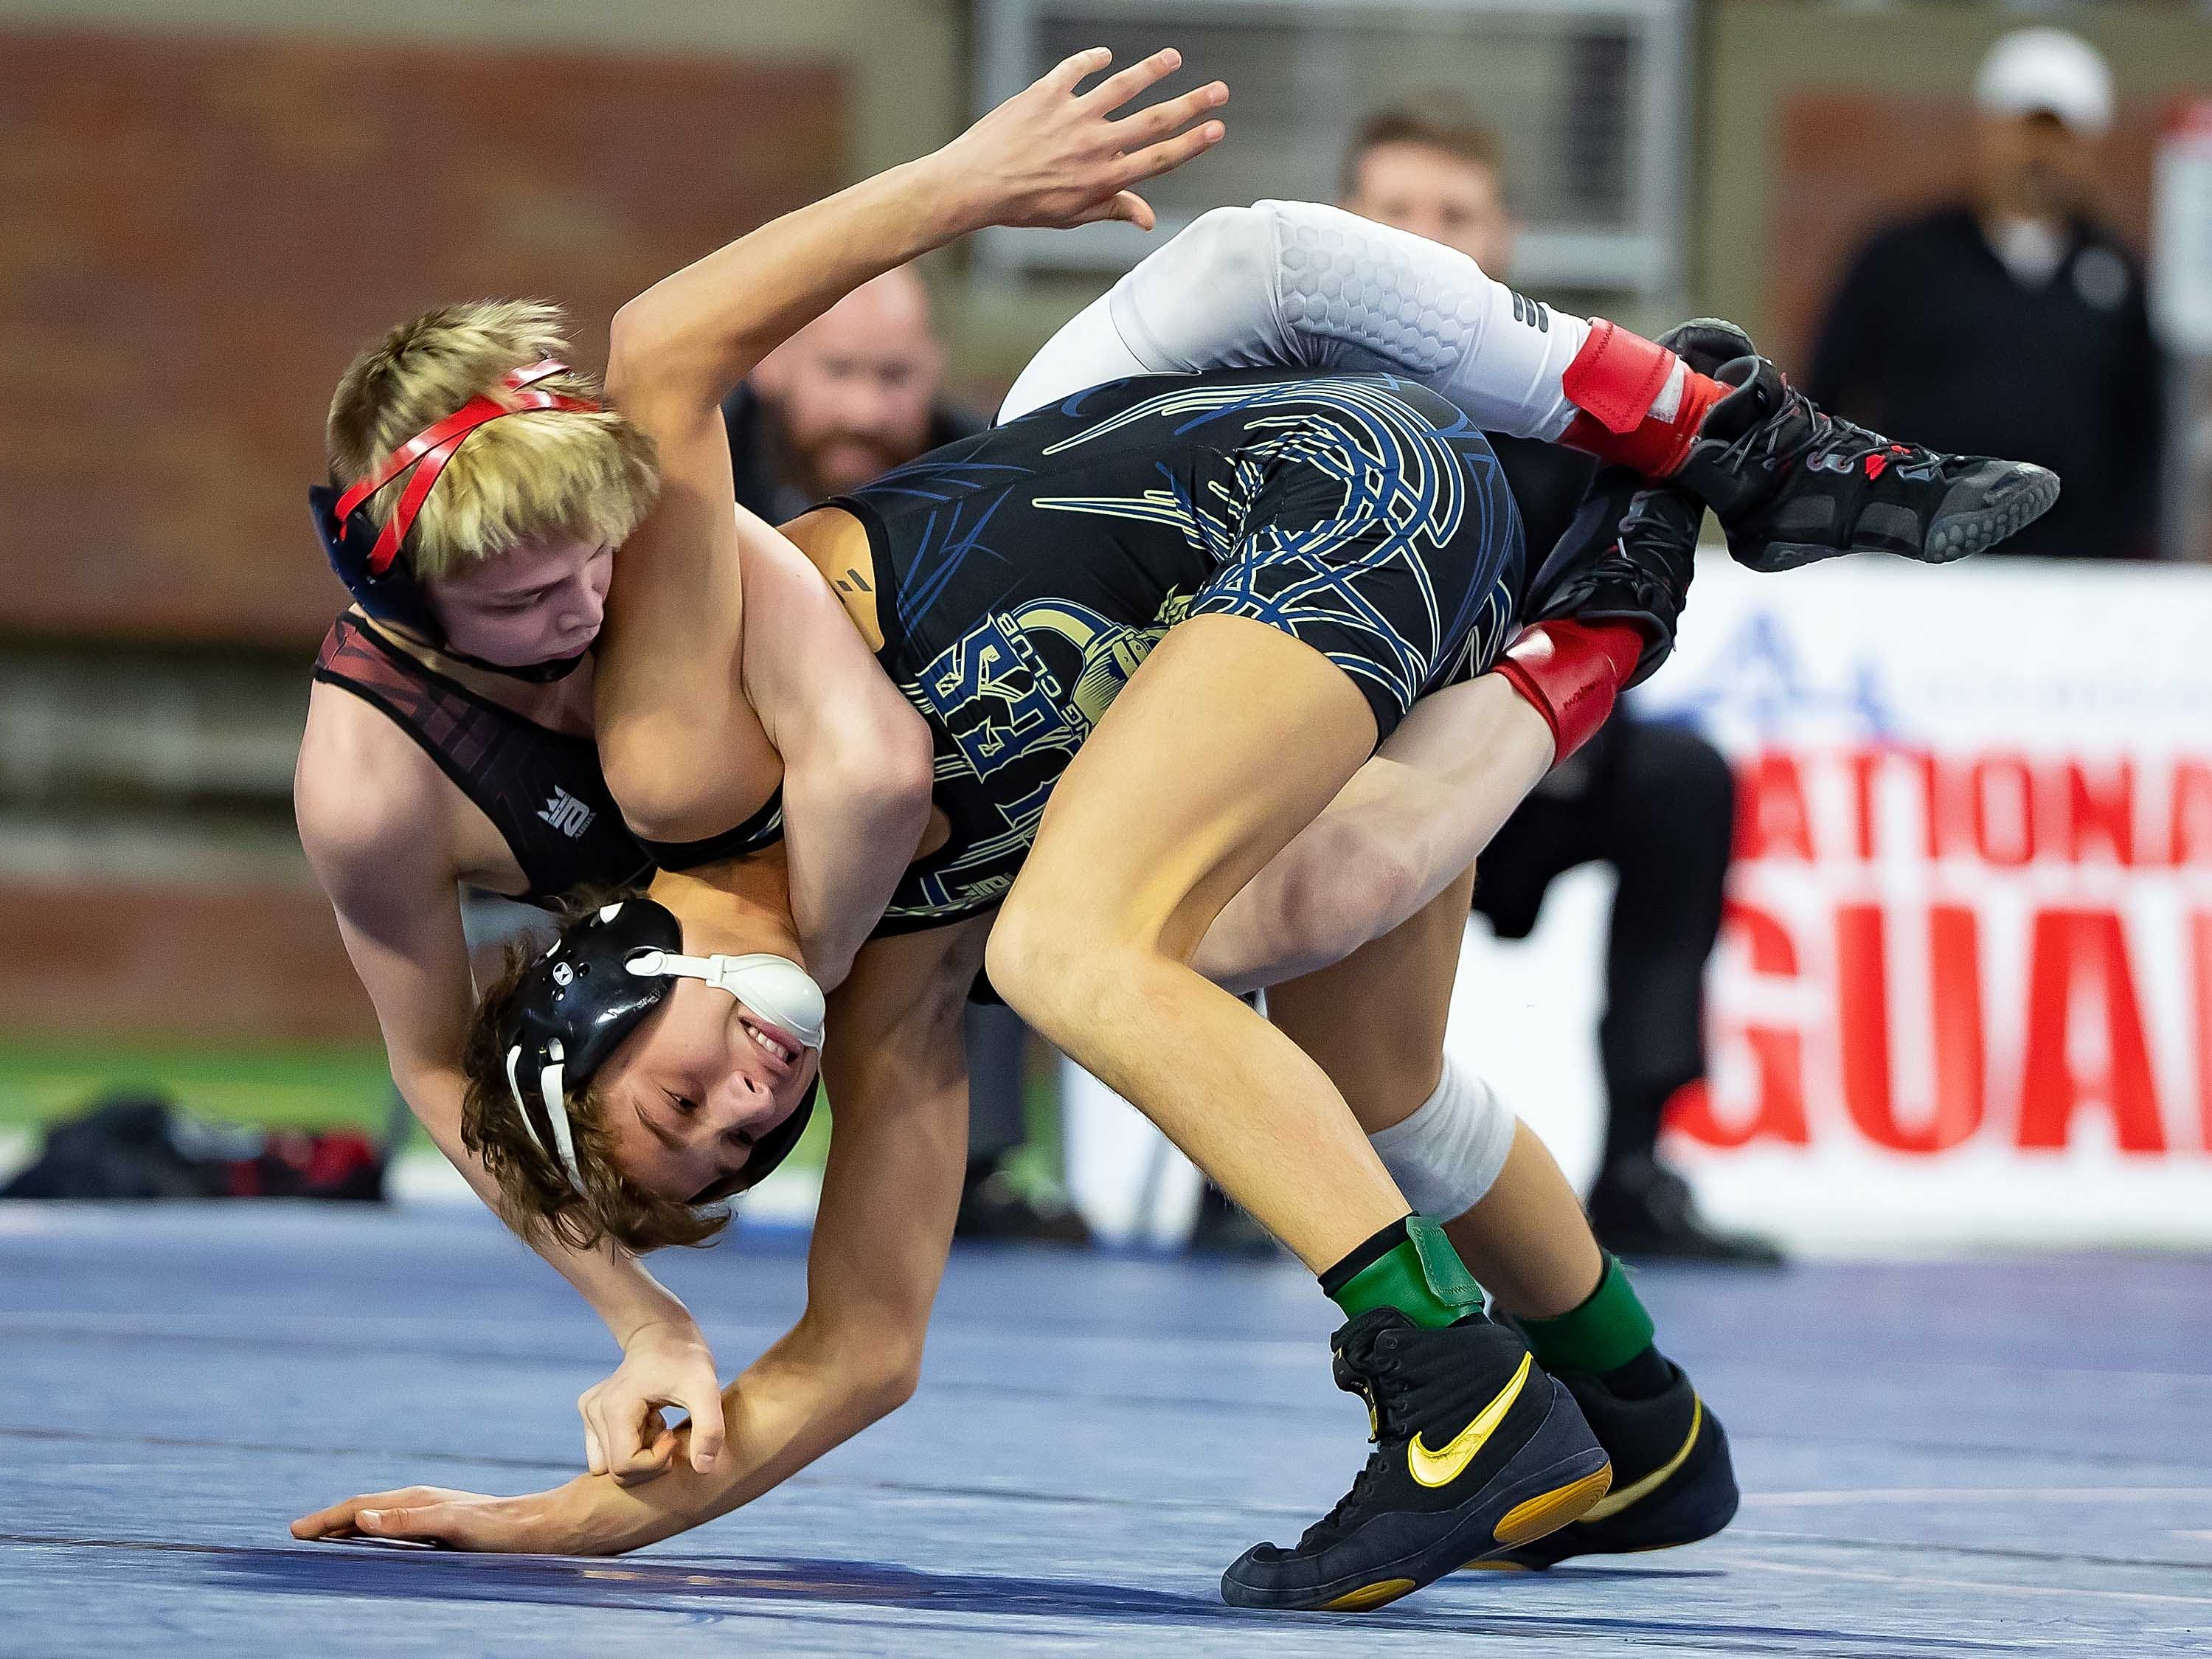 Jacob Brya of St. Johns, top, wrestles with Jamison Zimmerman of Niles during their 103-pound Division 2 championship match.